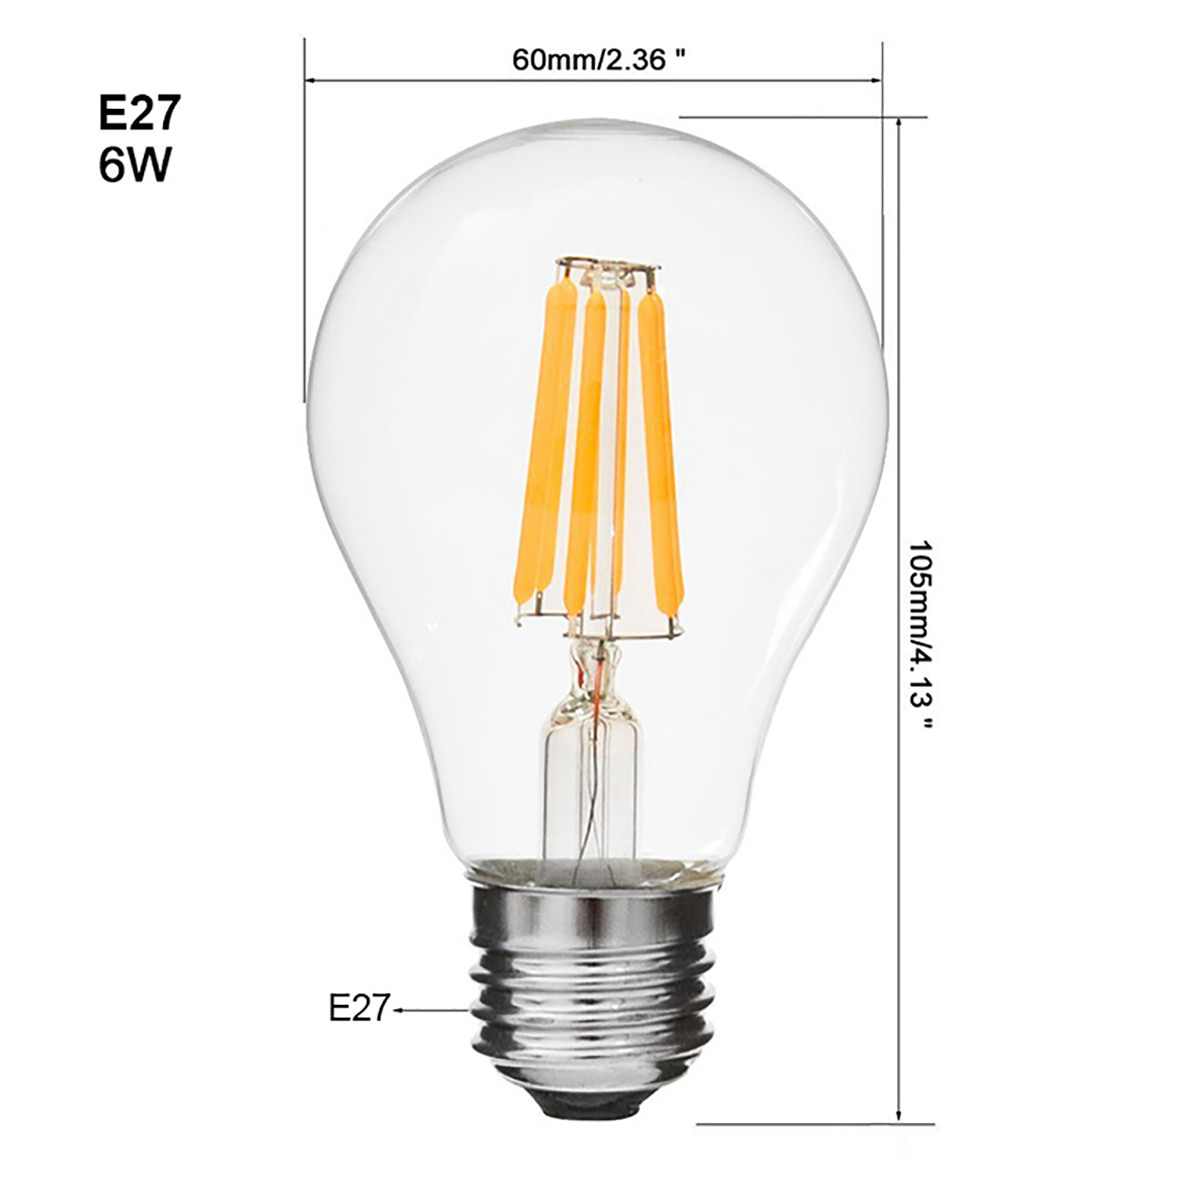 2w Filament Led Globe Light Bulb Light A60 Chandelier Bulb